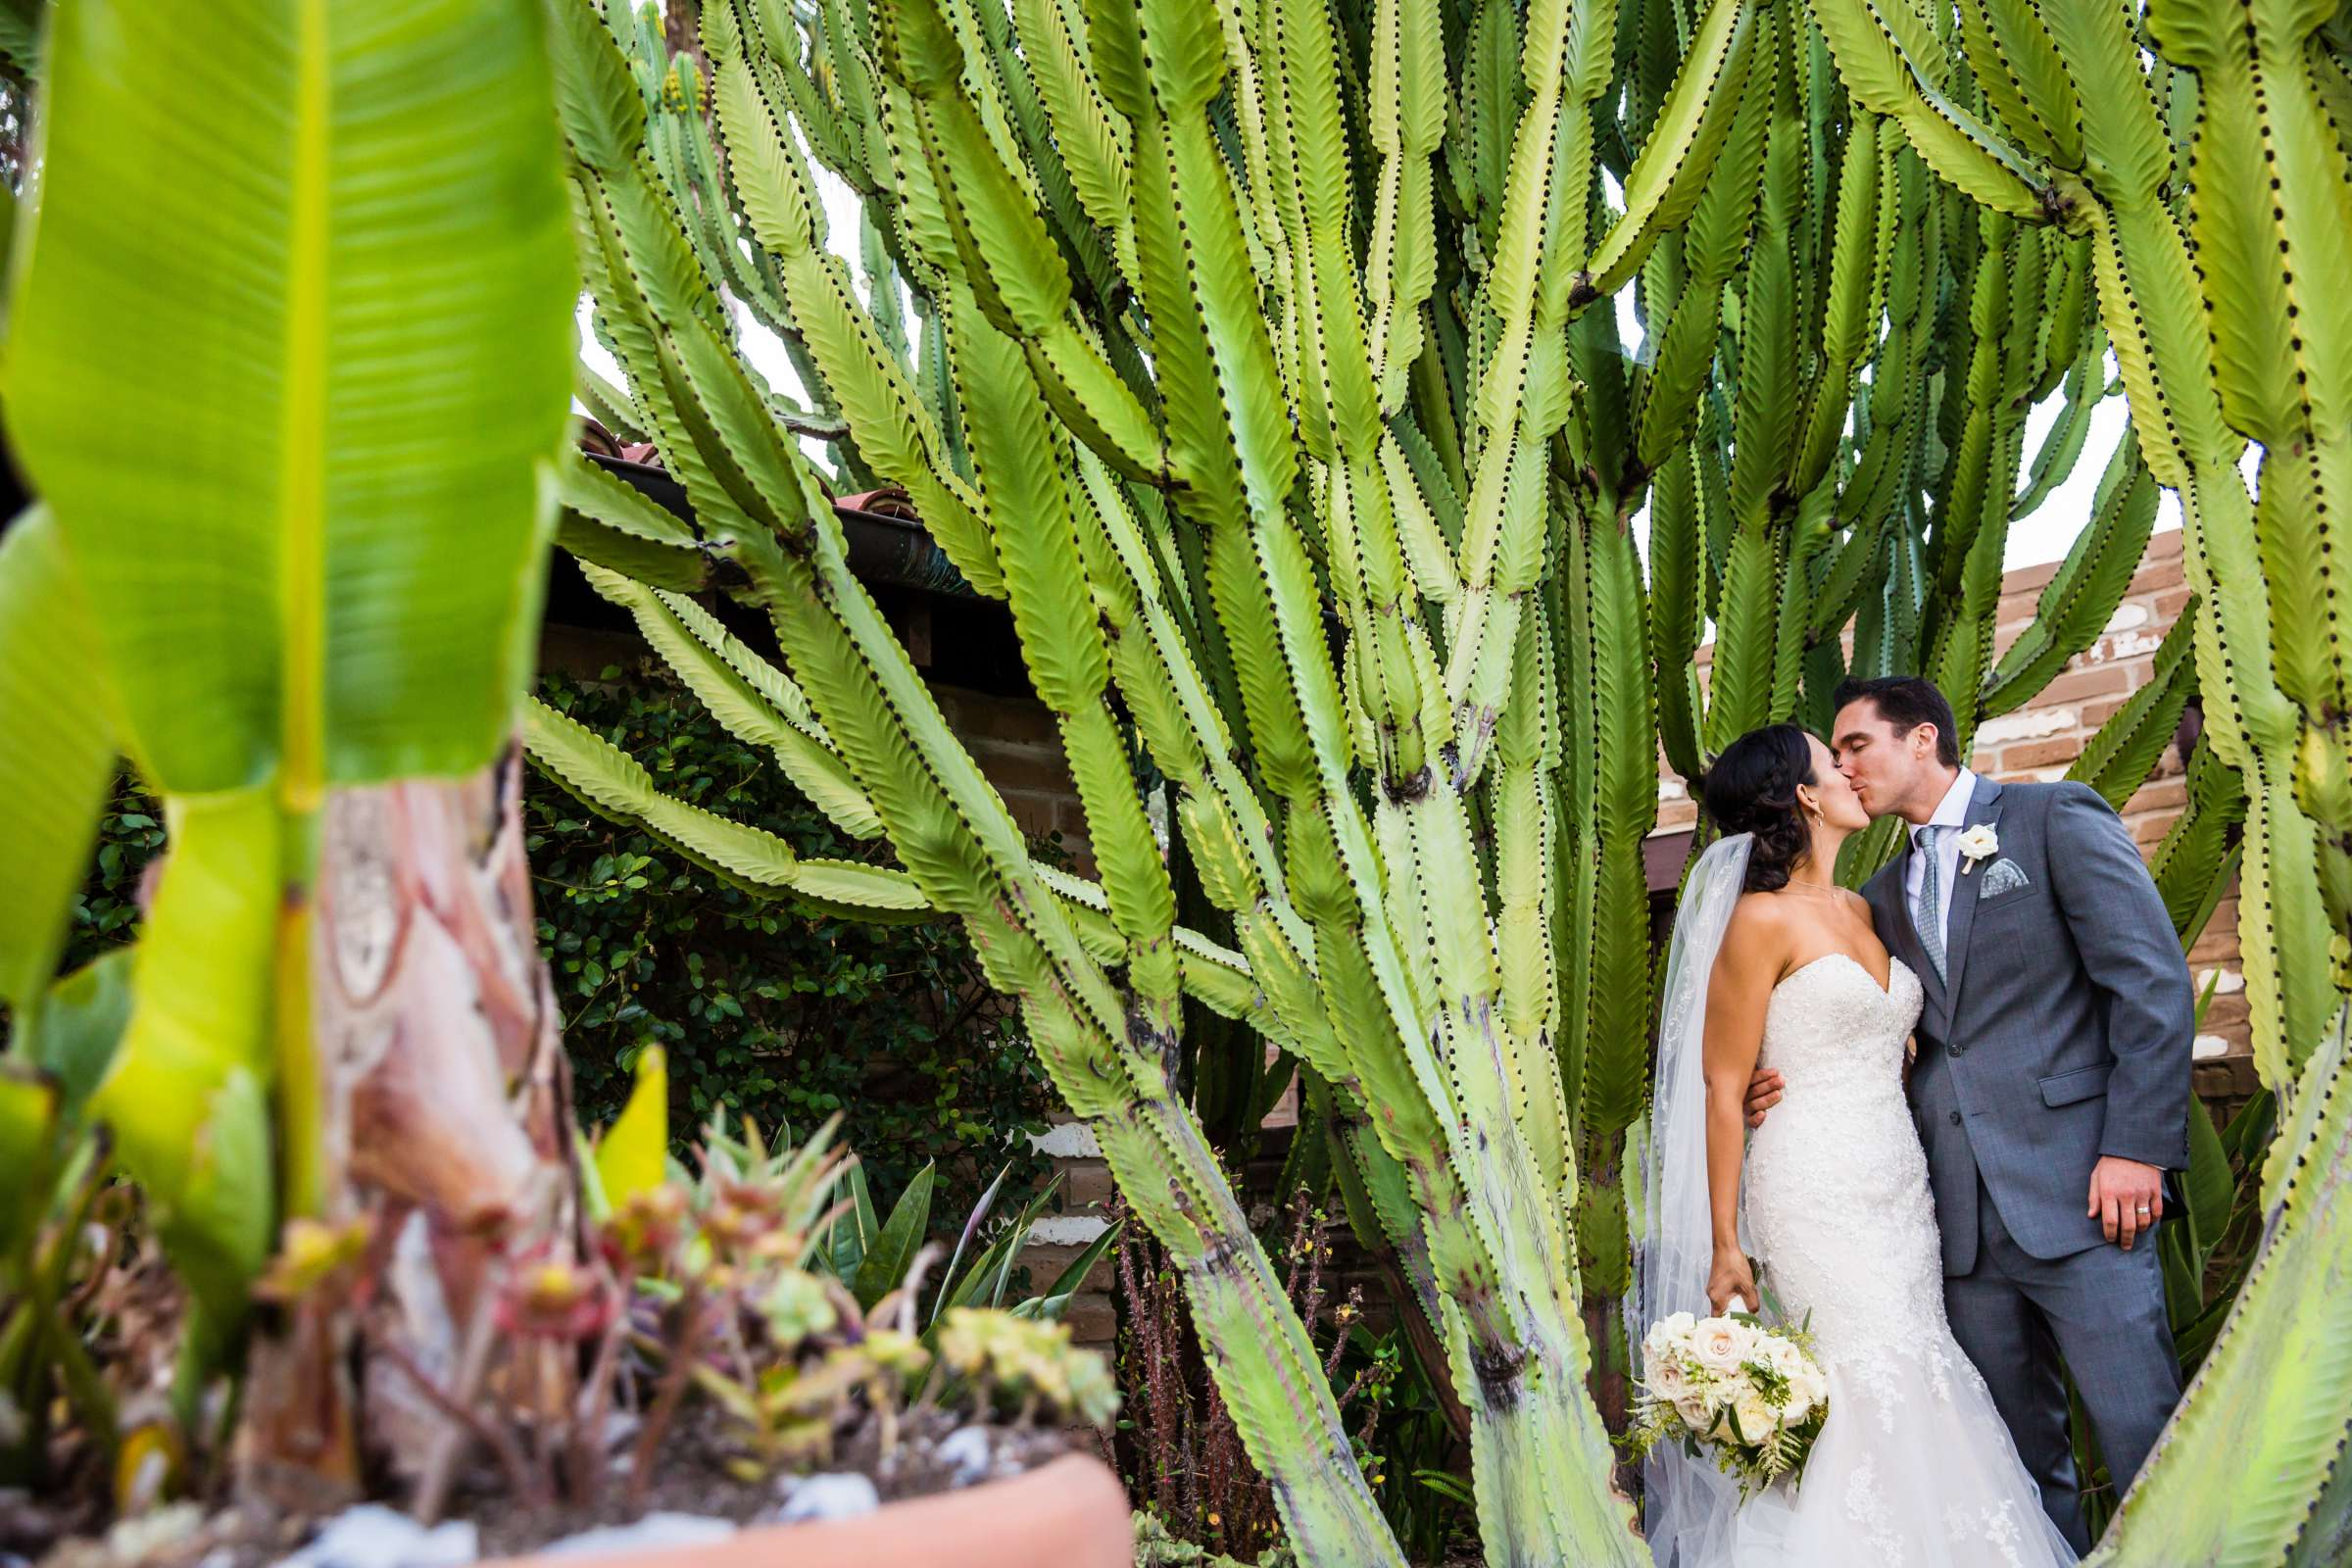 Estancia Wedding, Janet and Justin Wedding Photo #421750 by True Photography